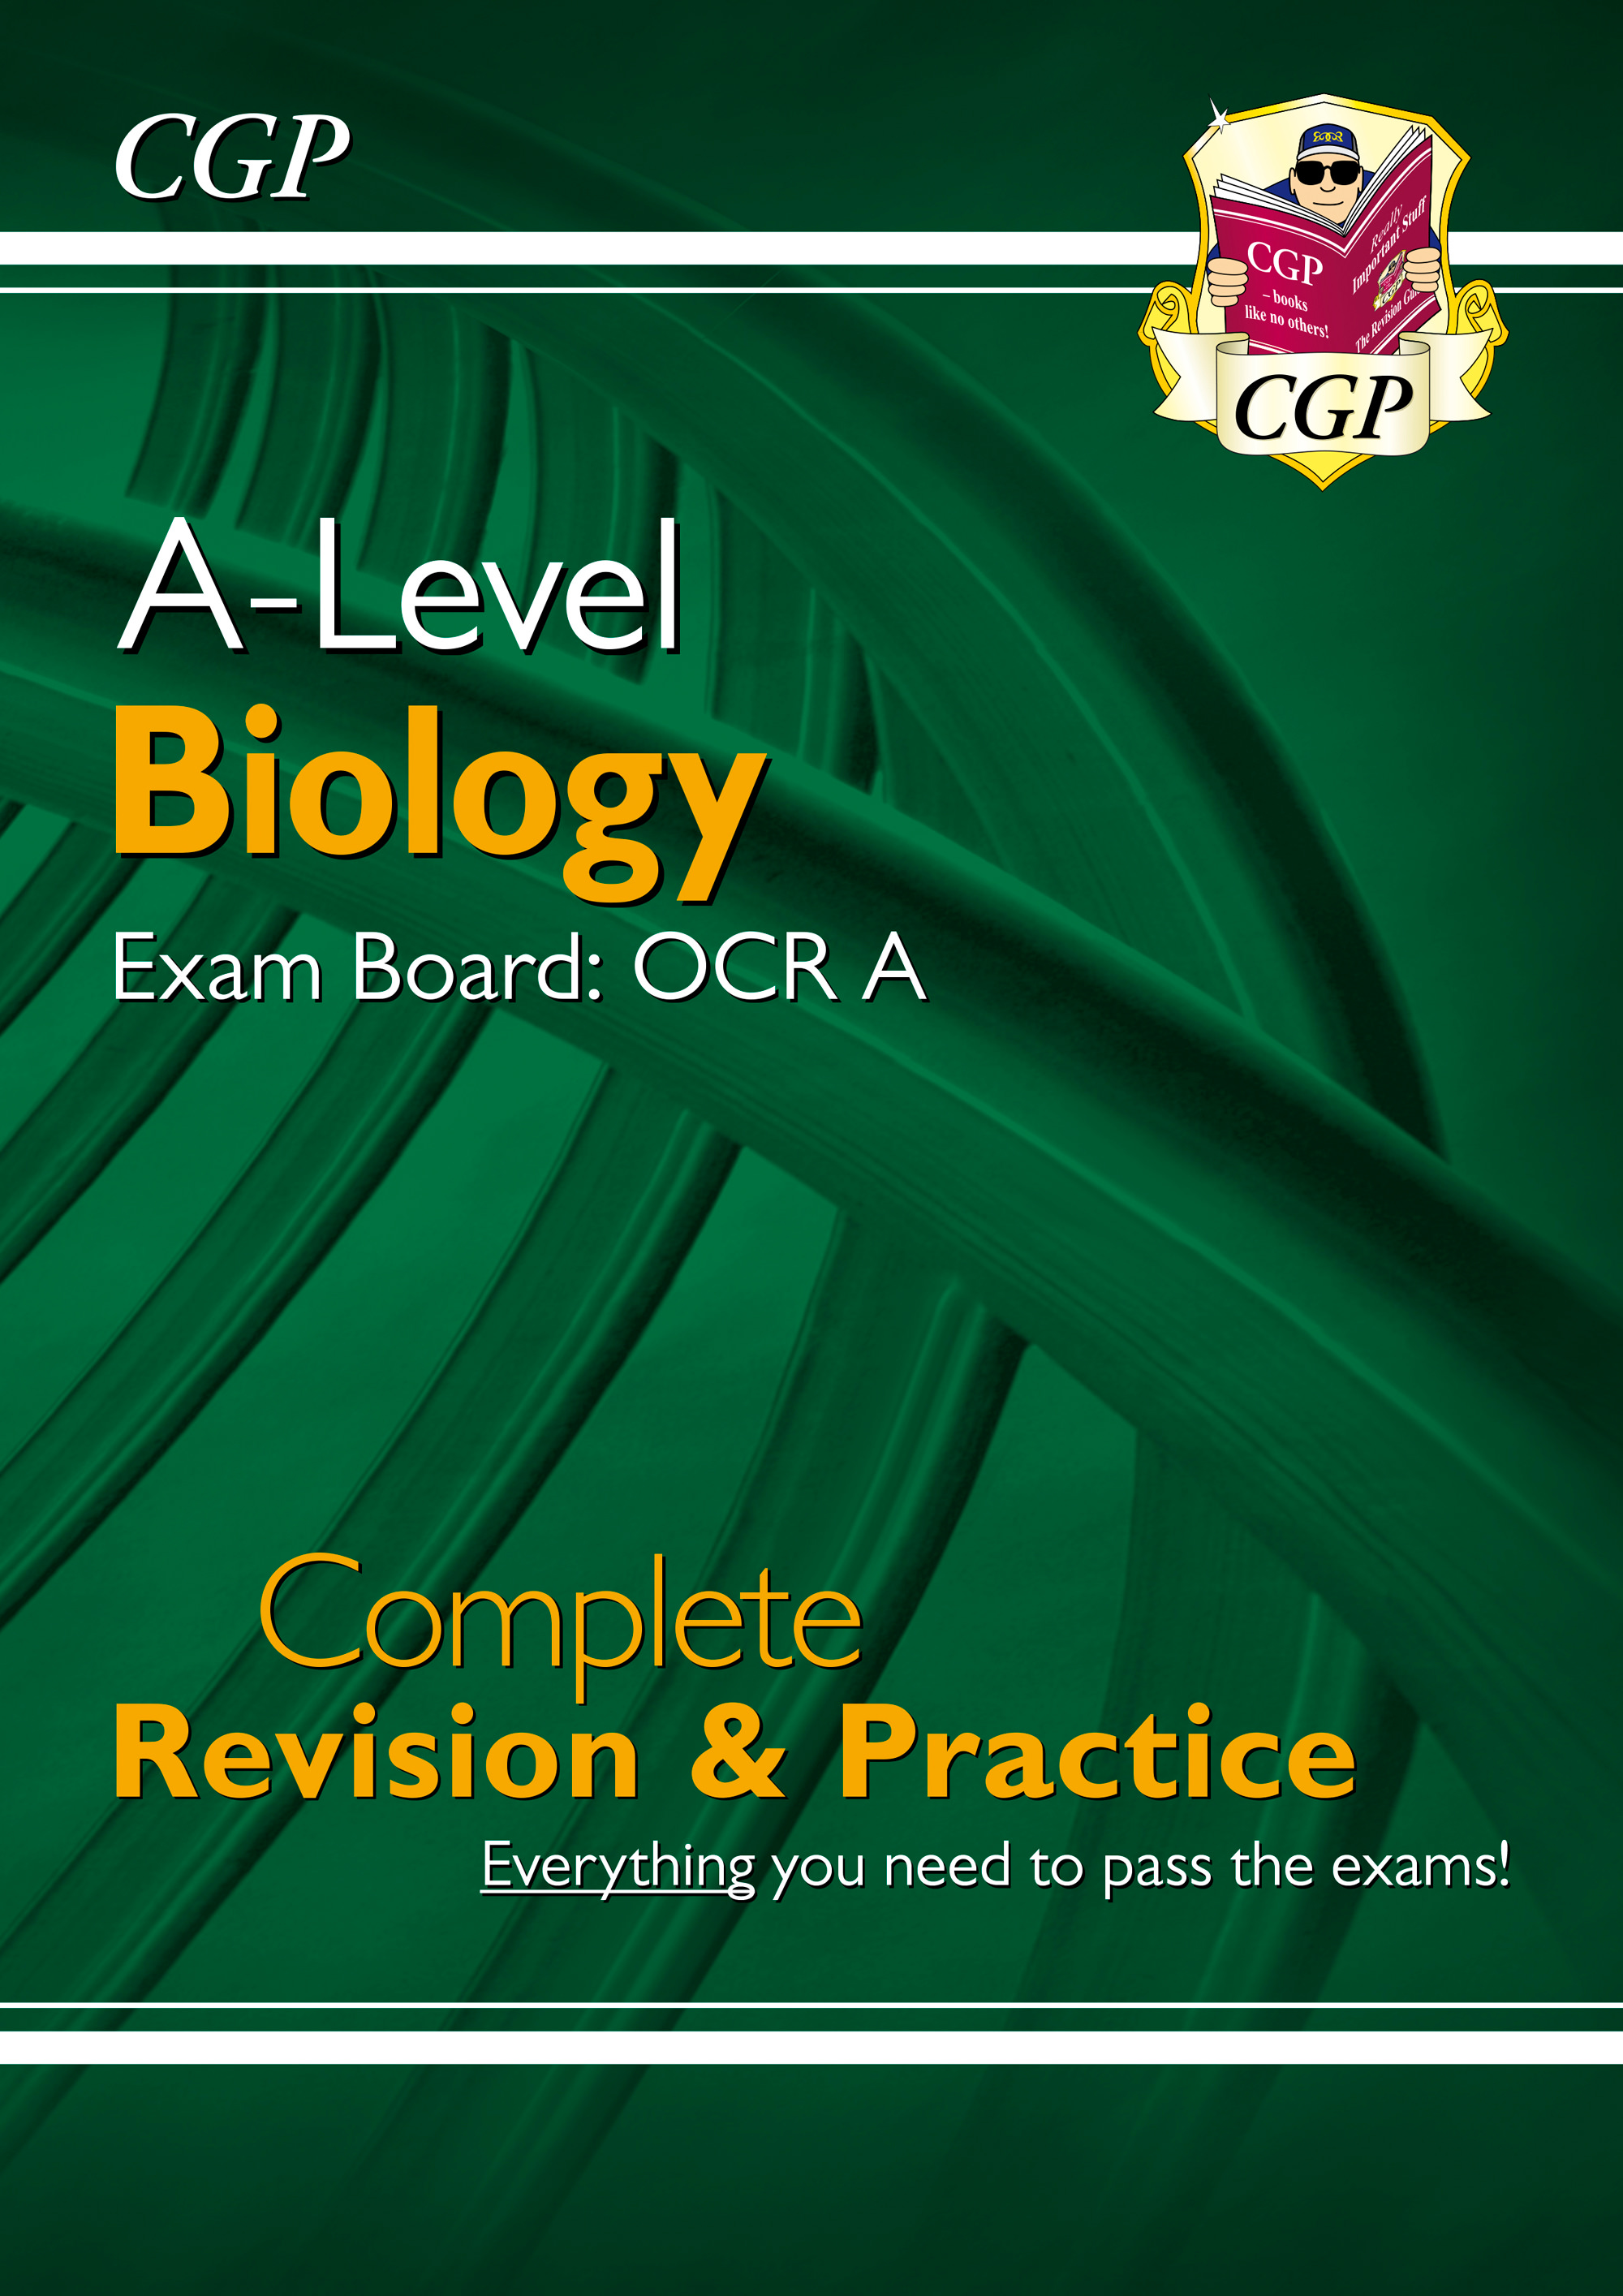 BRAR73DK - New A-Level Biology: OCR A Year 1 & 2 Complete Revision & Practice